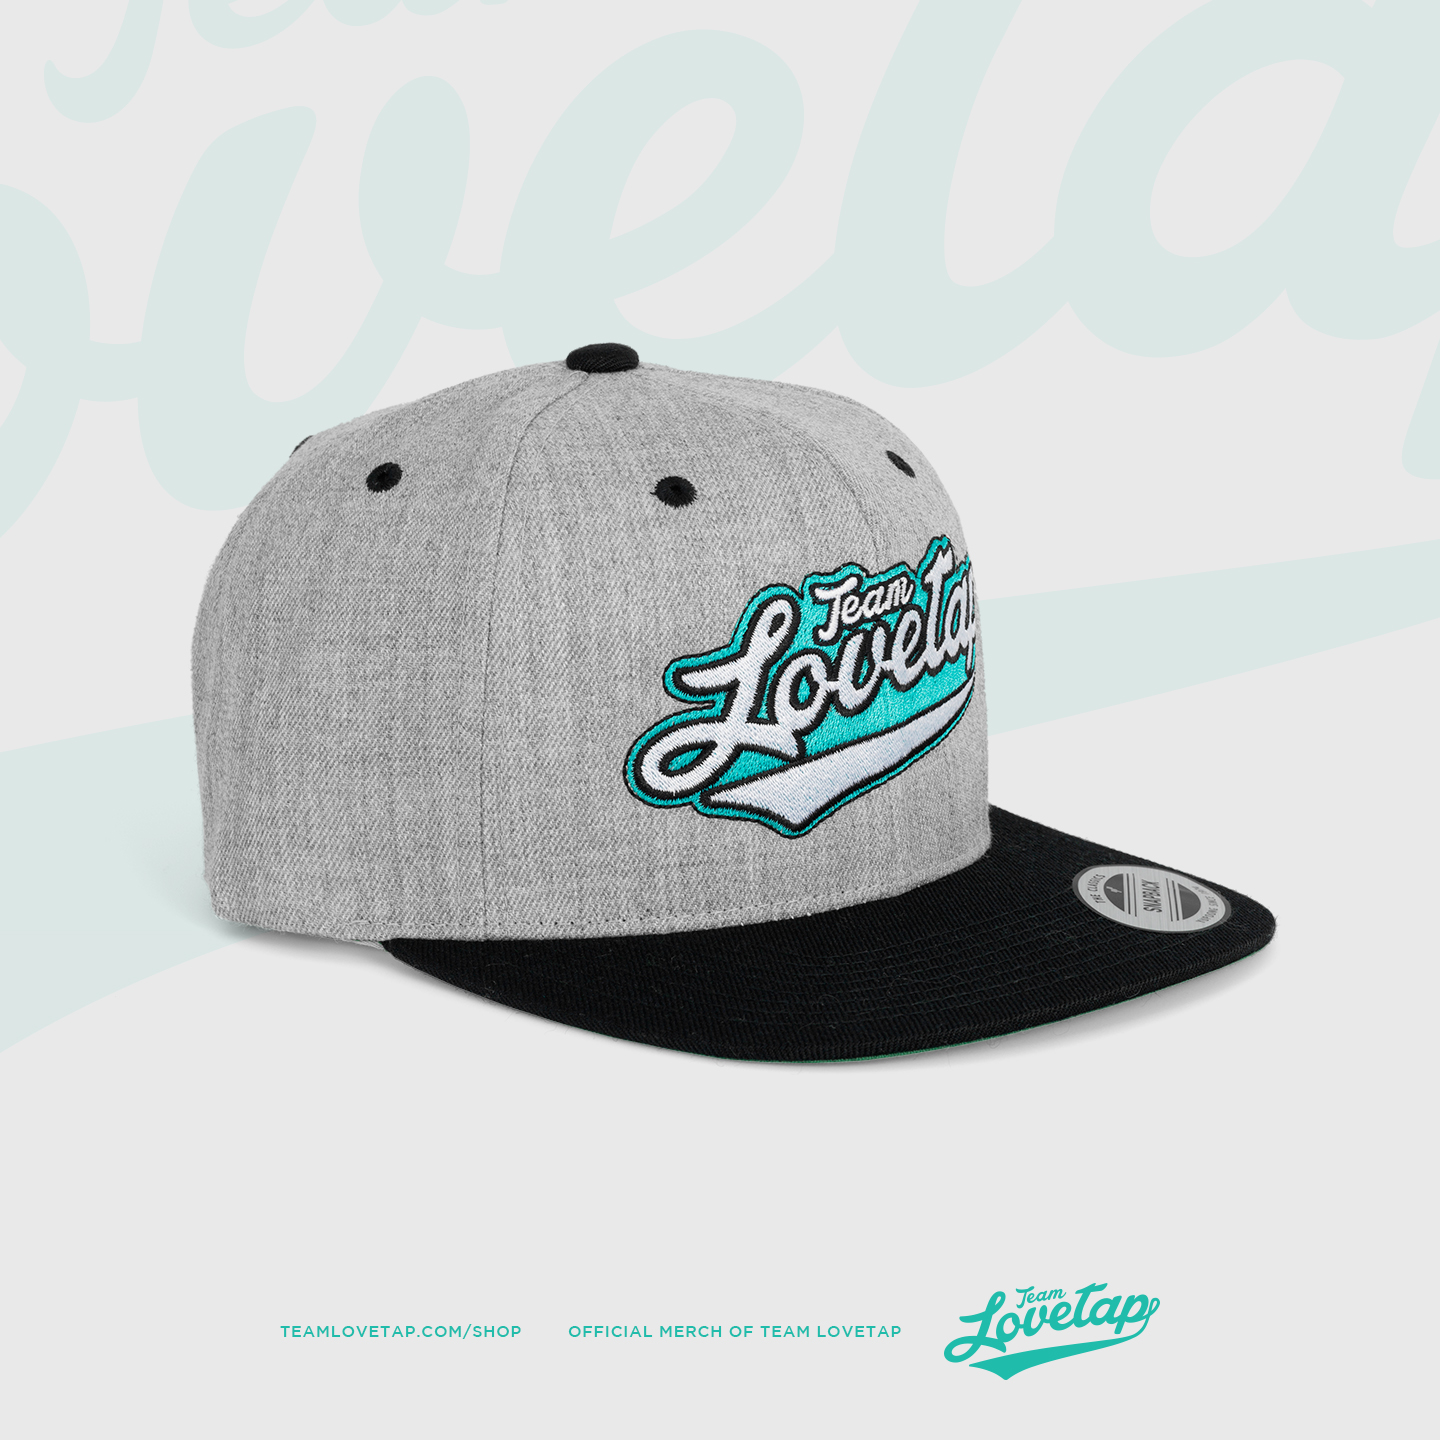 snapback_black_lightgray_teamlovetap_01.jpg